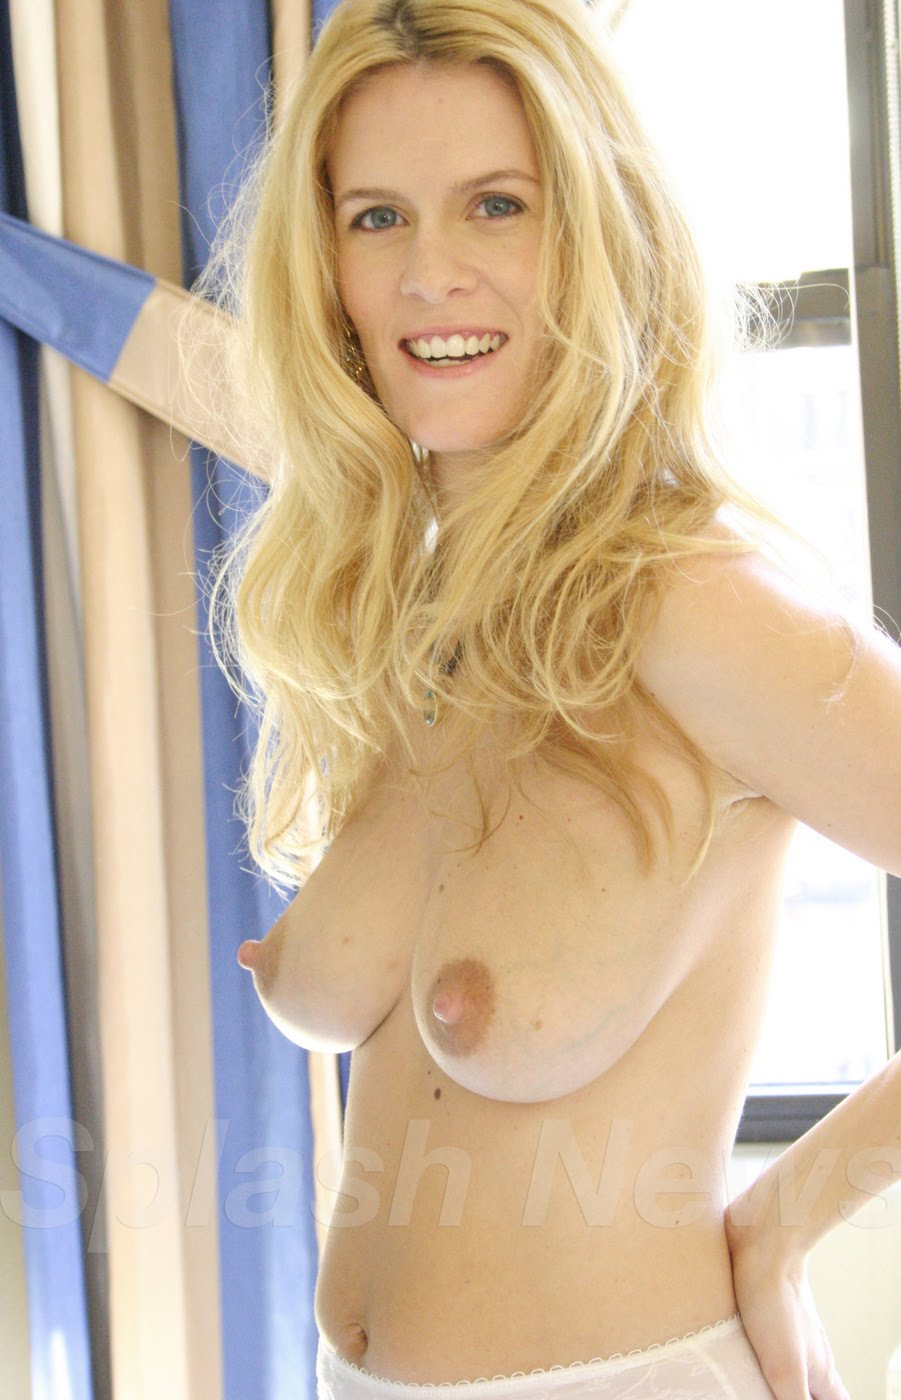 alex-mccord-nude-photo